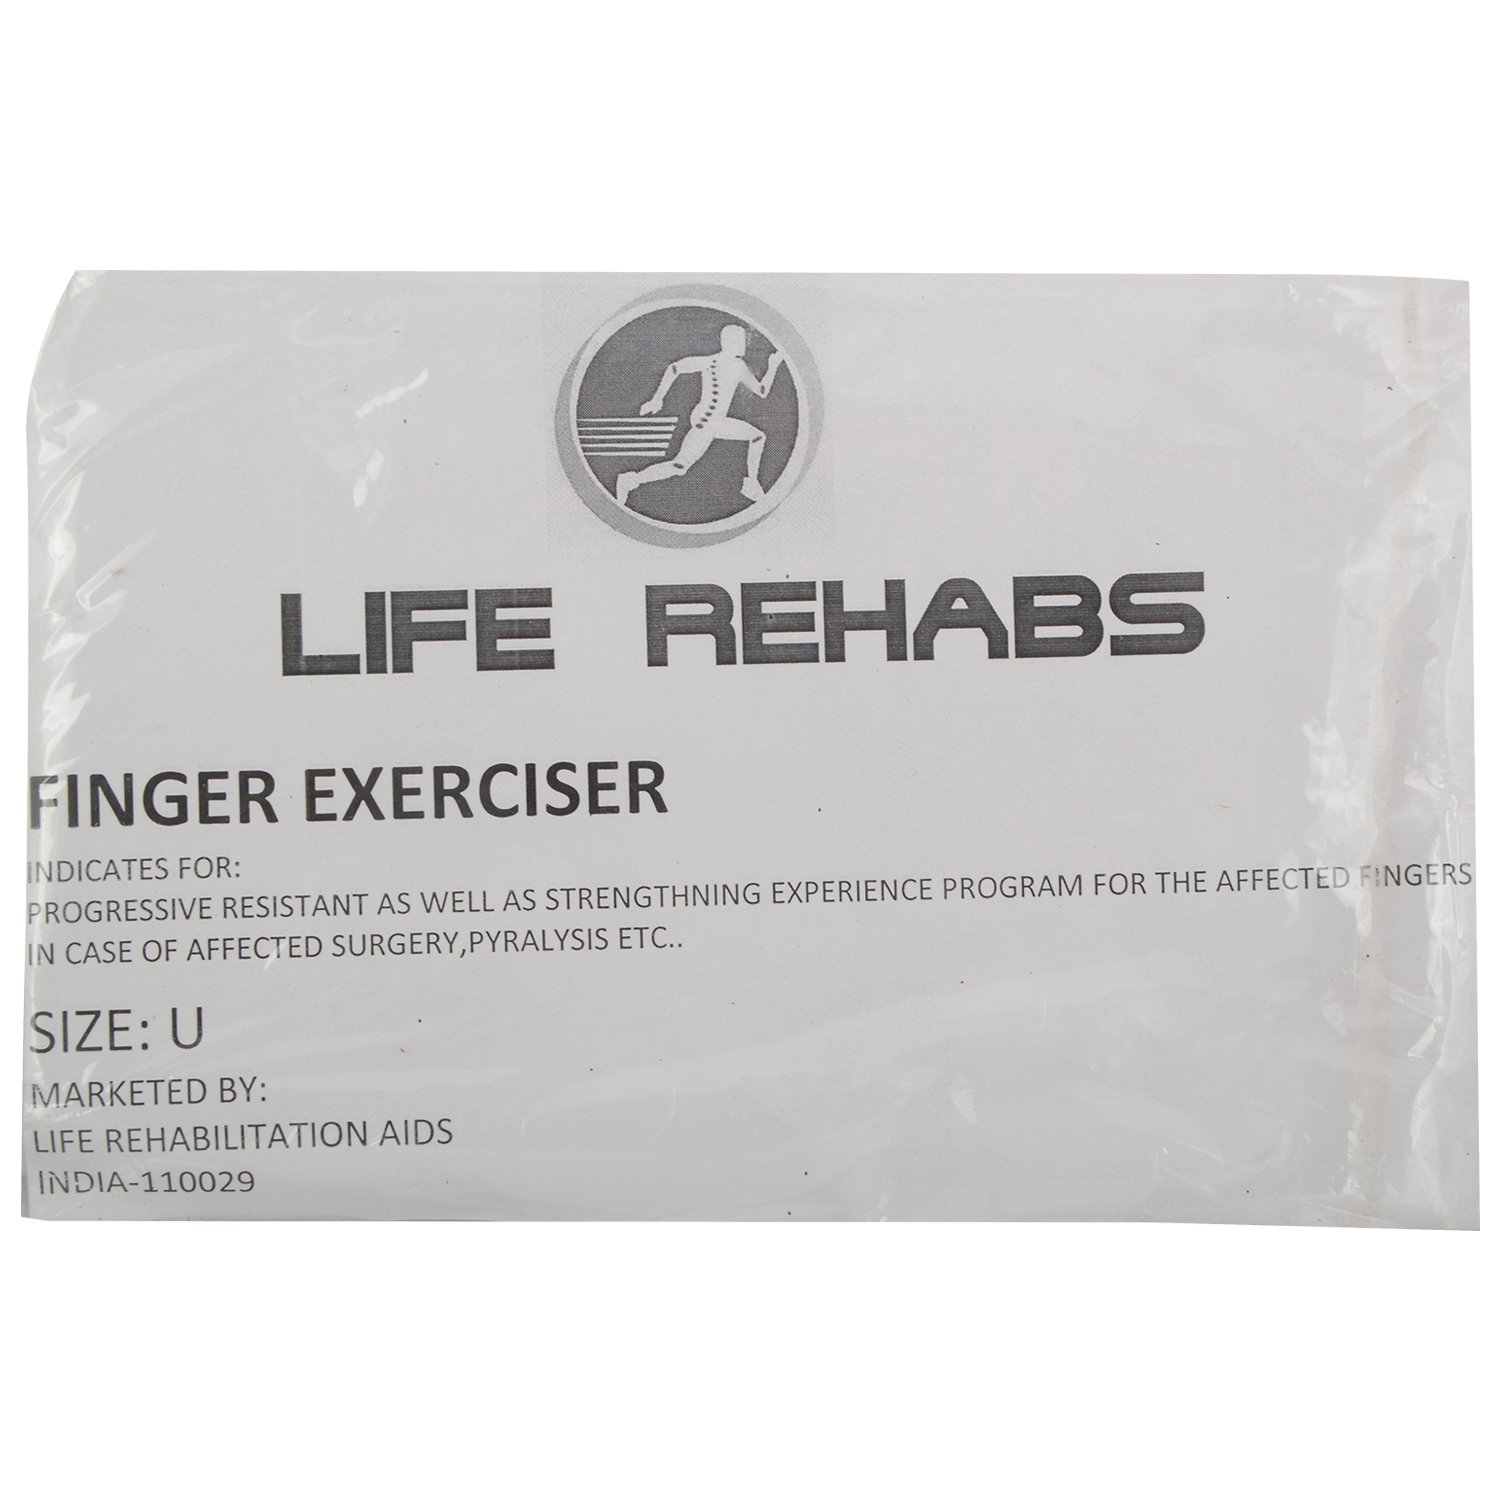 Buy life rehabs finger exerciser online at low prices in india buy life rehabs finger exerciser online at low prices in india amazon nvjuhfo Choice Image